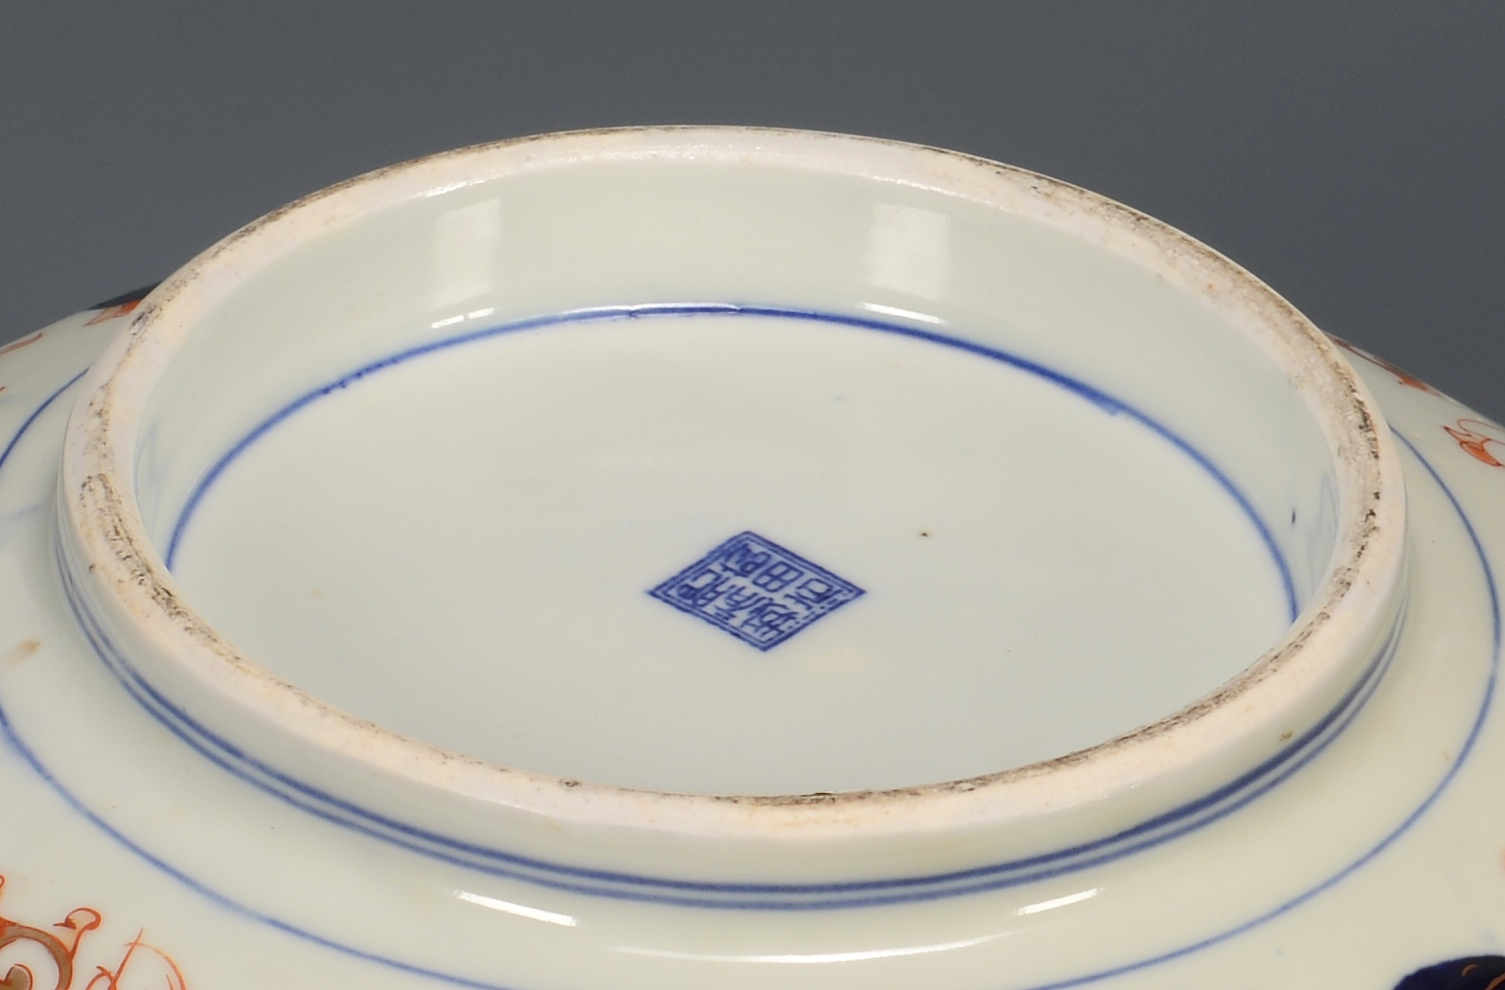 Lot 3594228: 3 Imari Bowls and a Square Plate